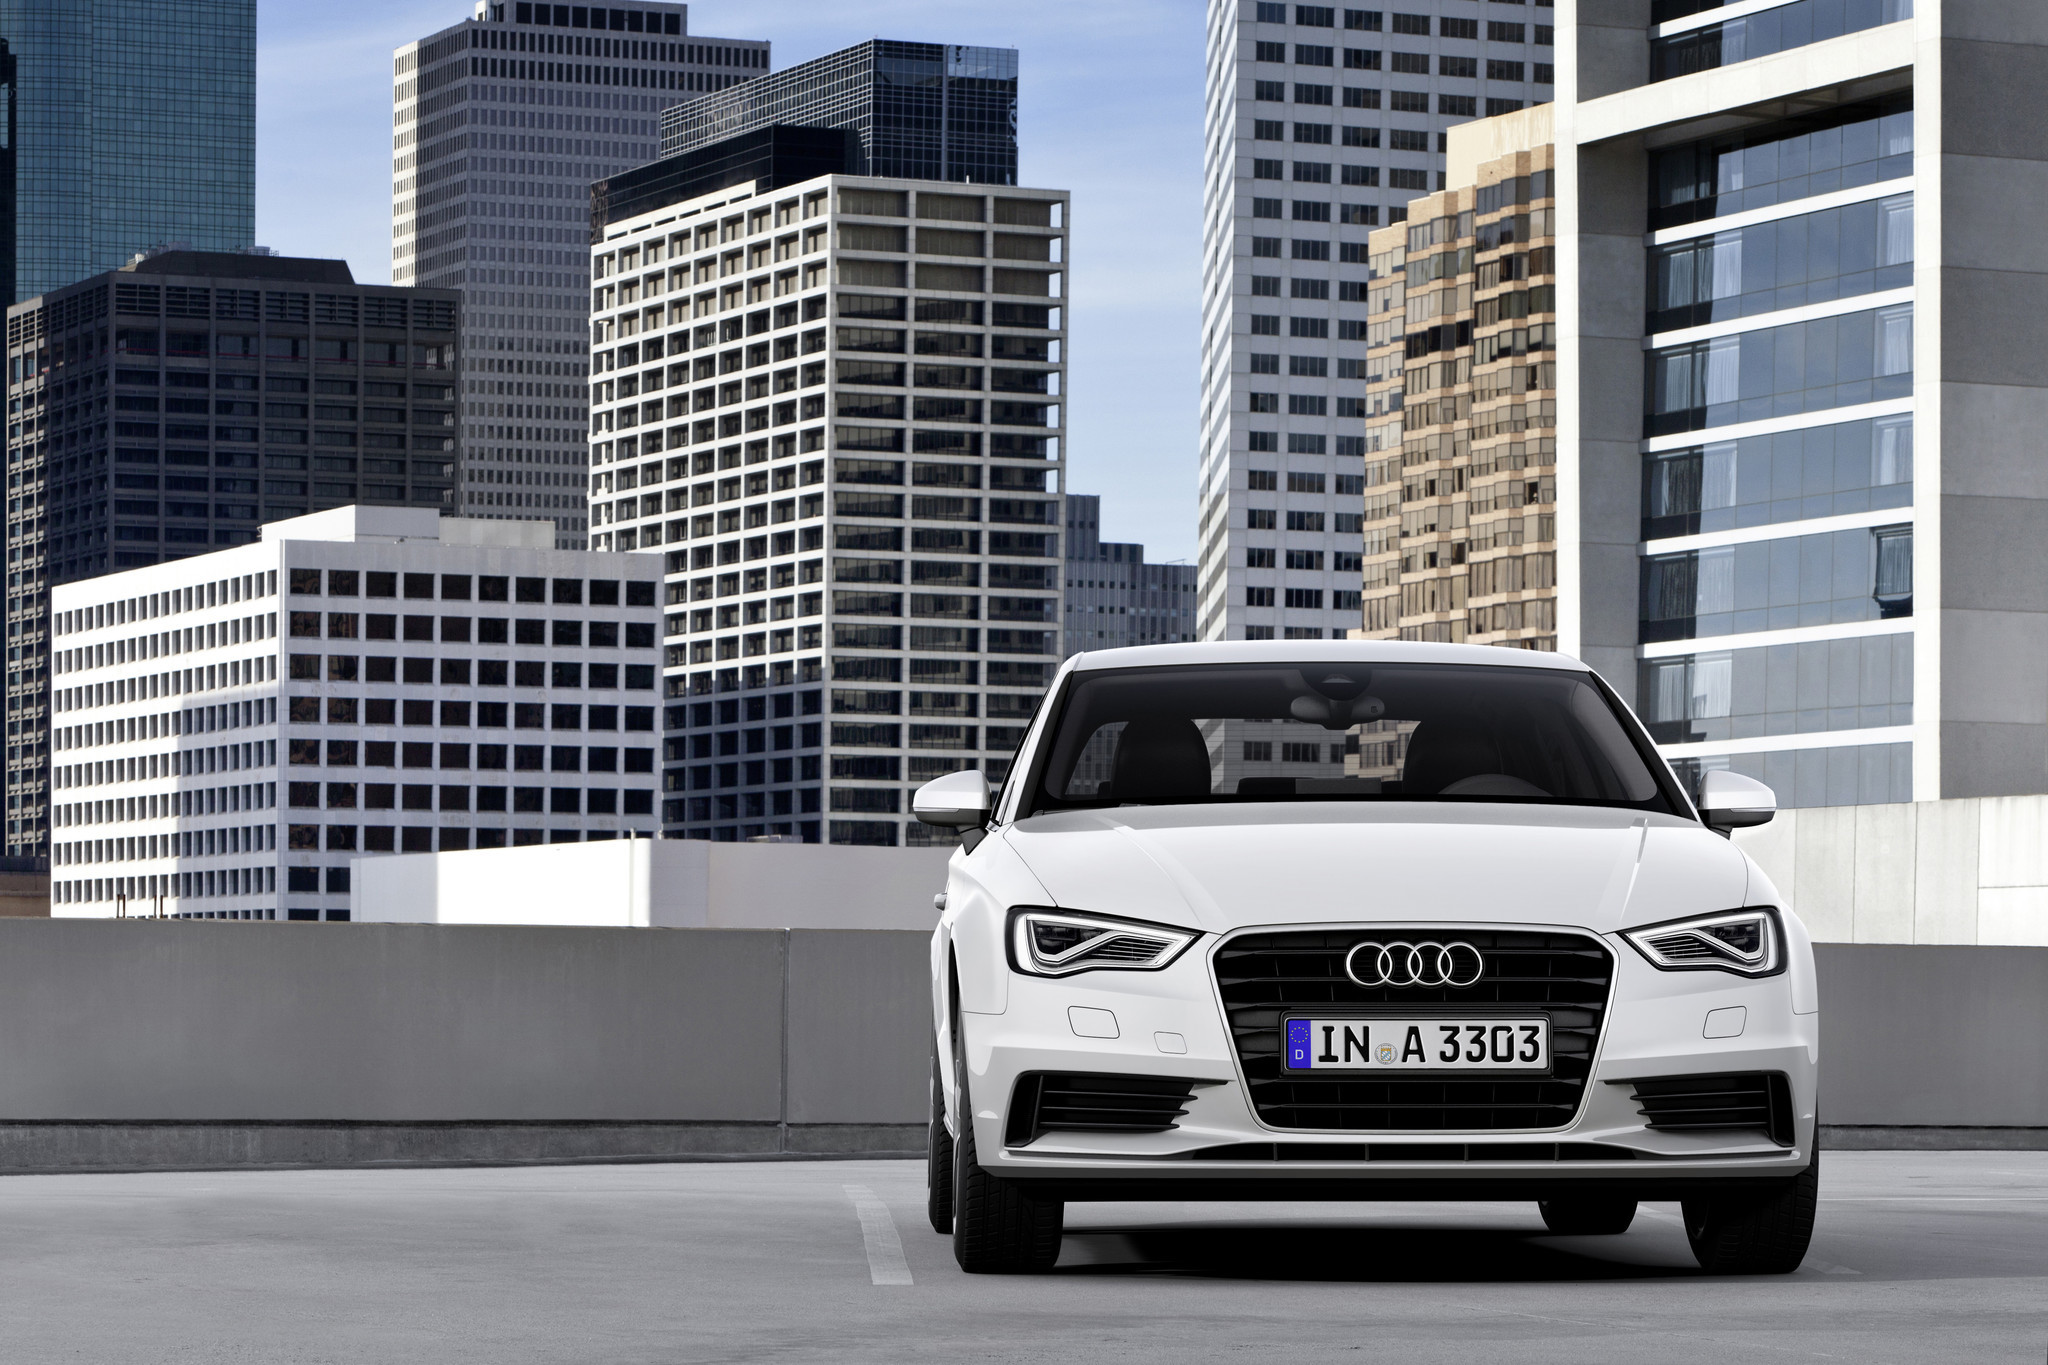 Will Audi's new A3 sedan start a price war with Mercedes CLA?